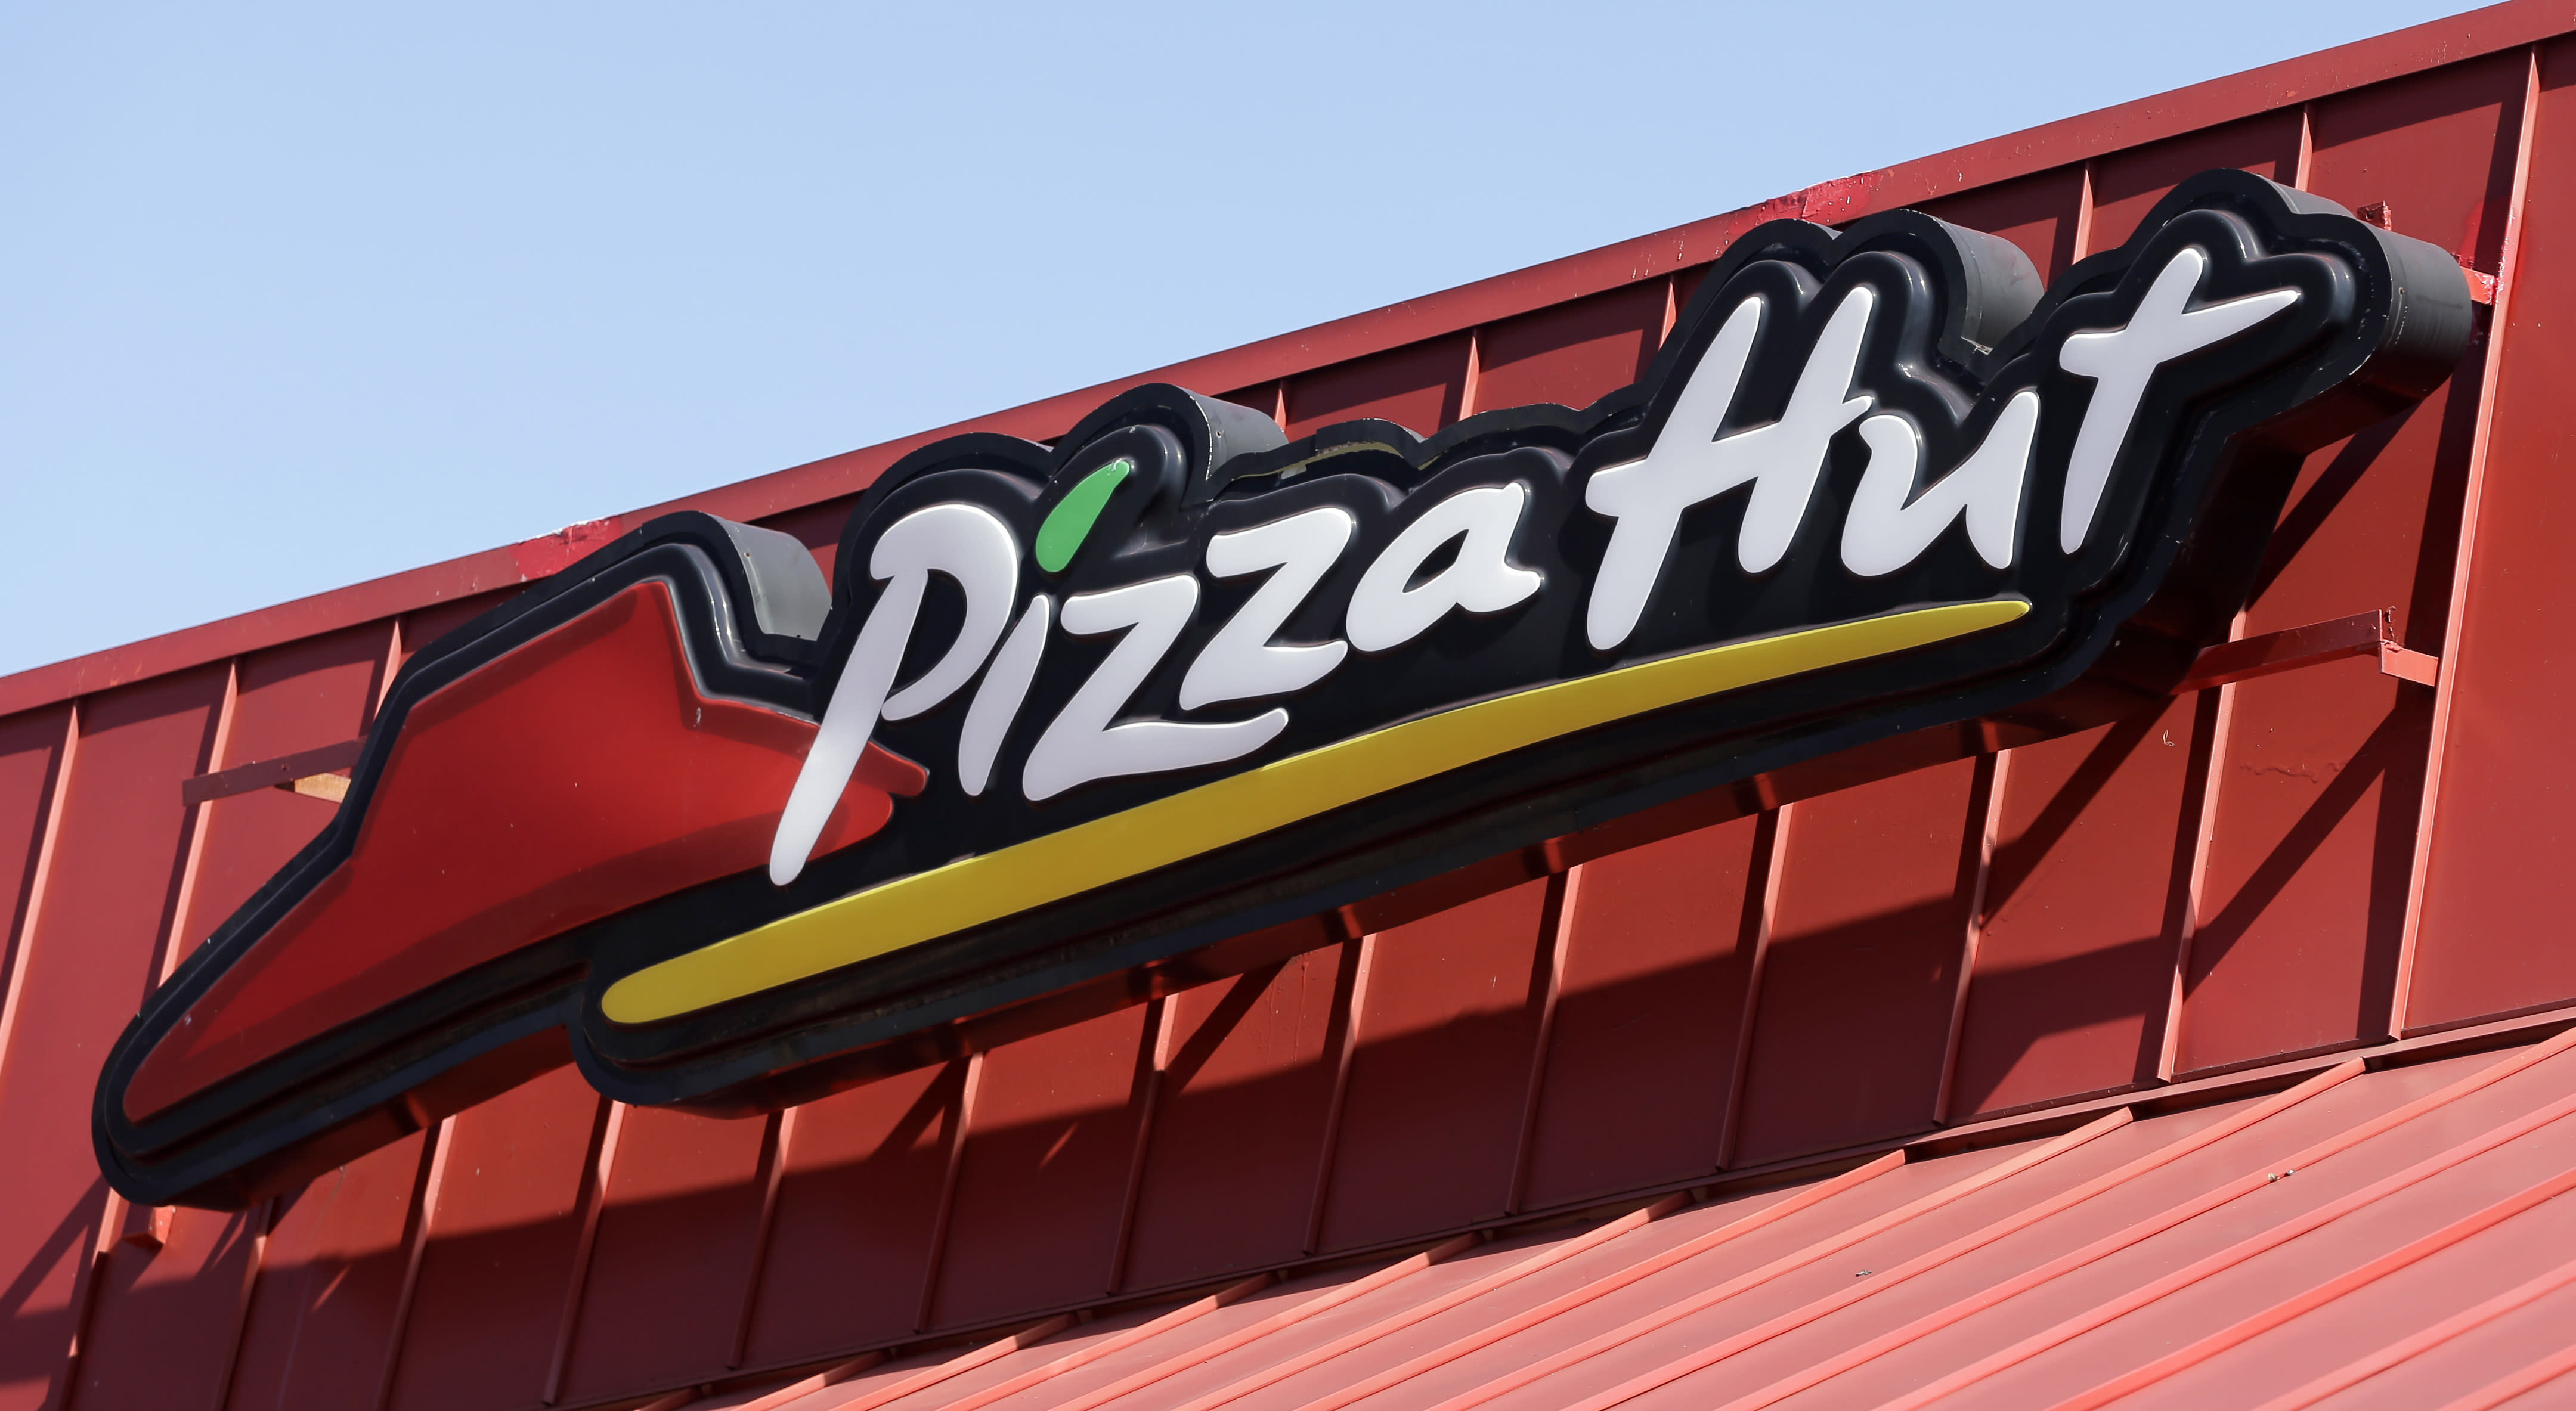 Why Pizza Hut is selling a colossal 2-foot pizza during the coronavirus pandemic